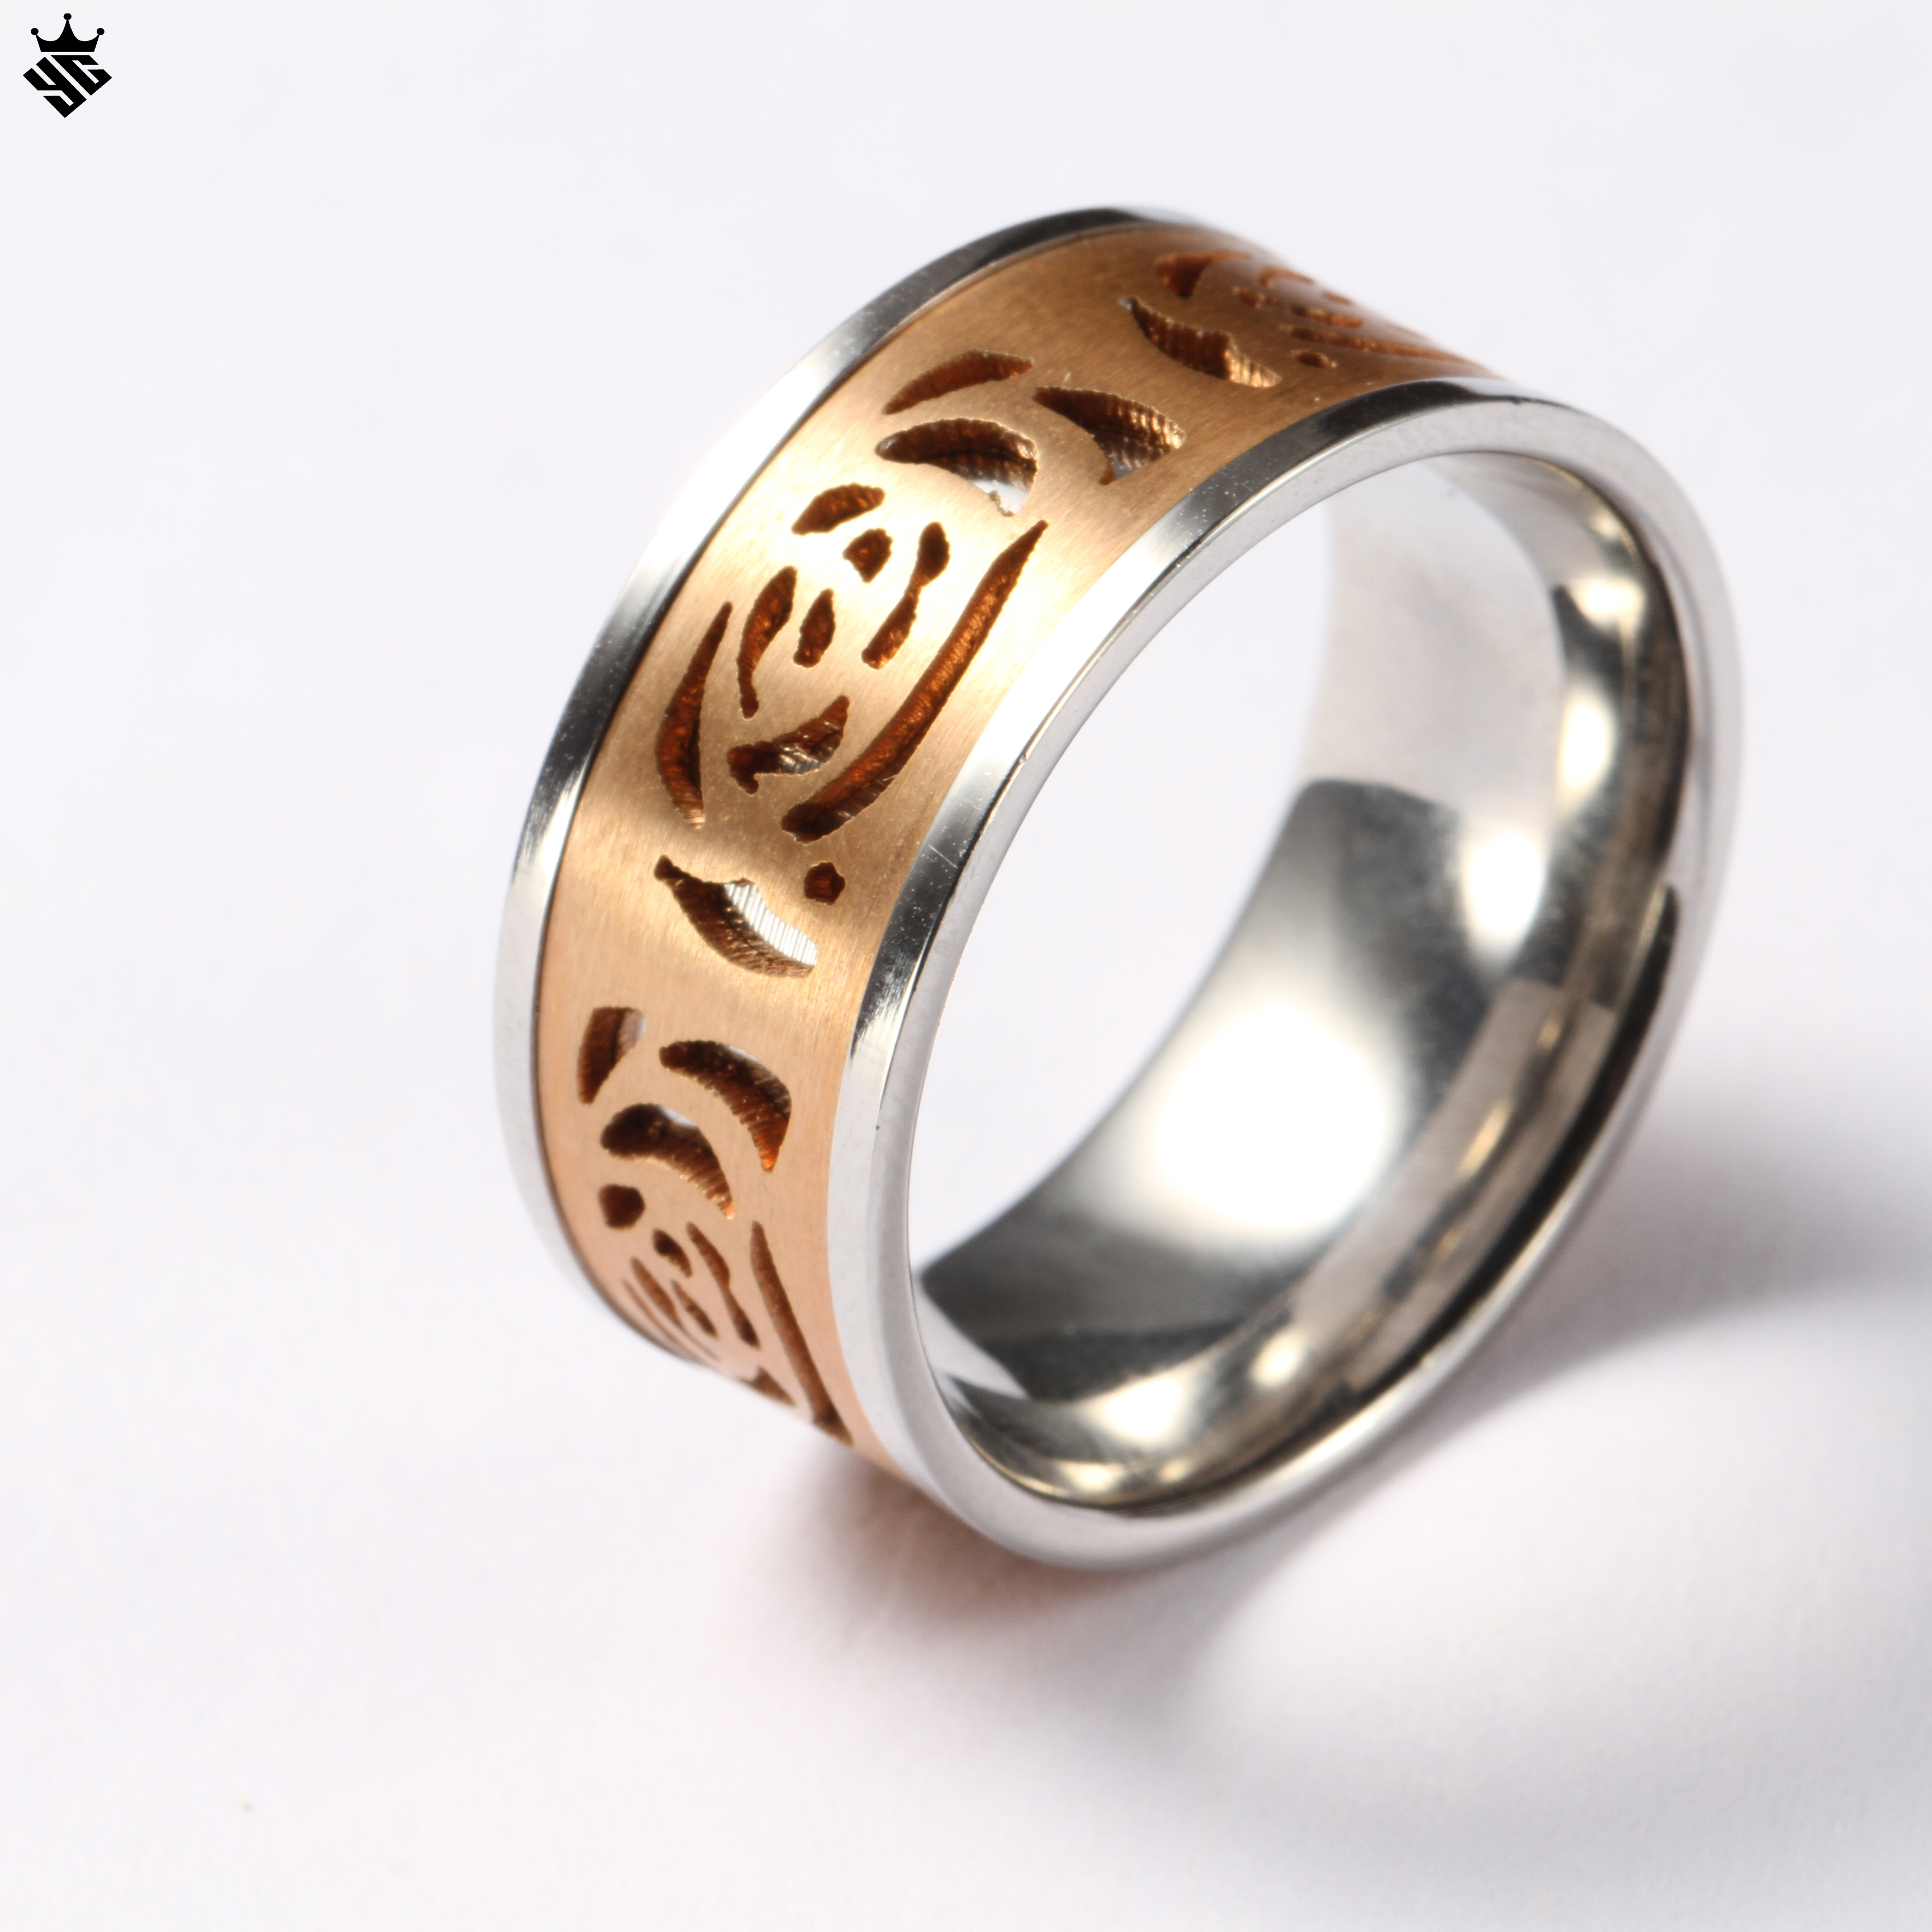 Hot selling stainless steel jewelry for wedding hollow gold inlay charm ring